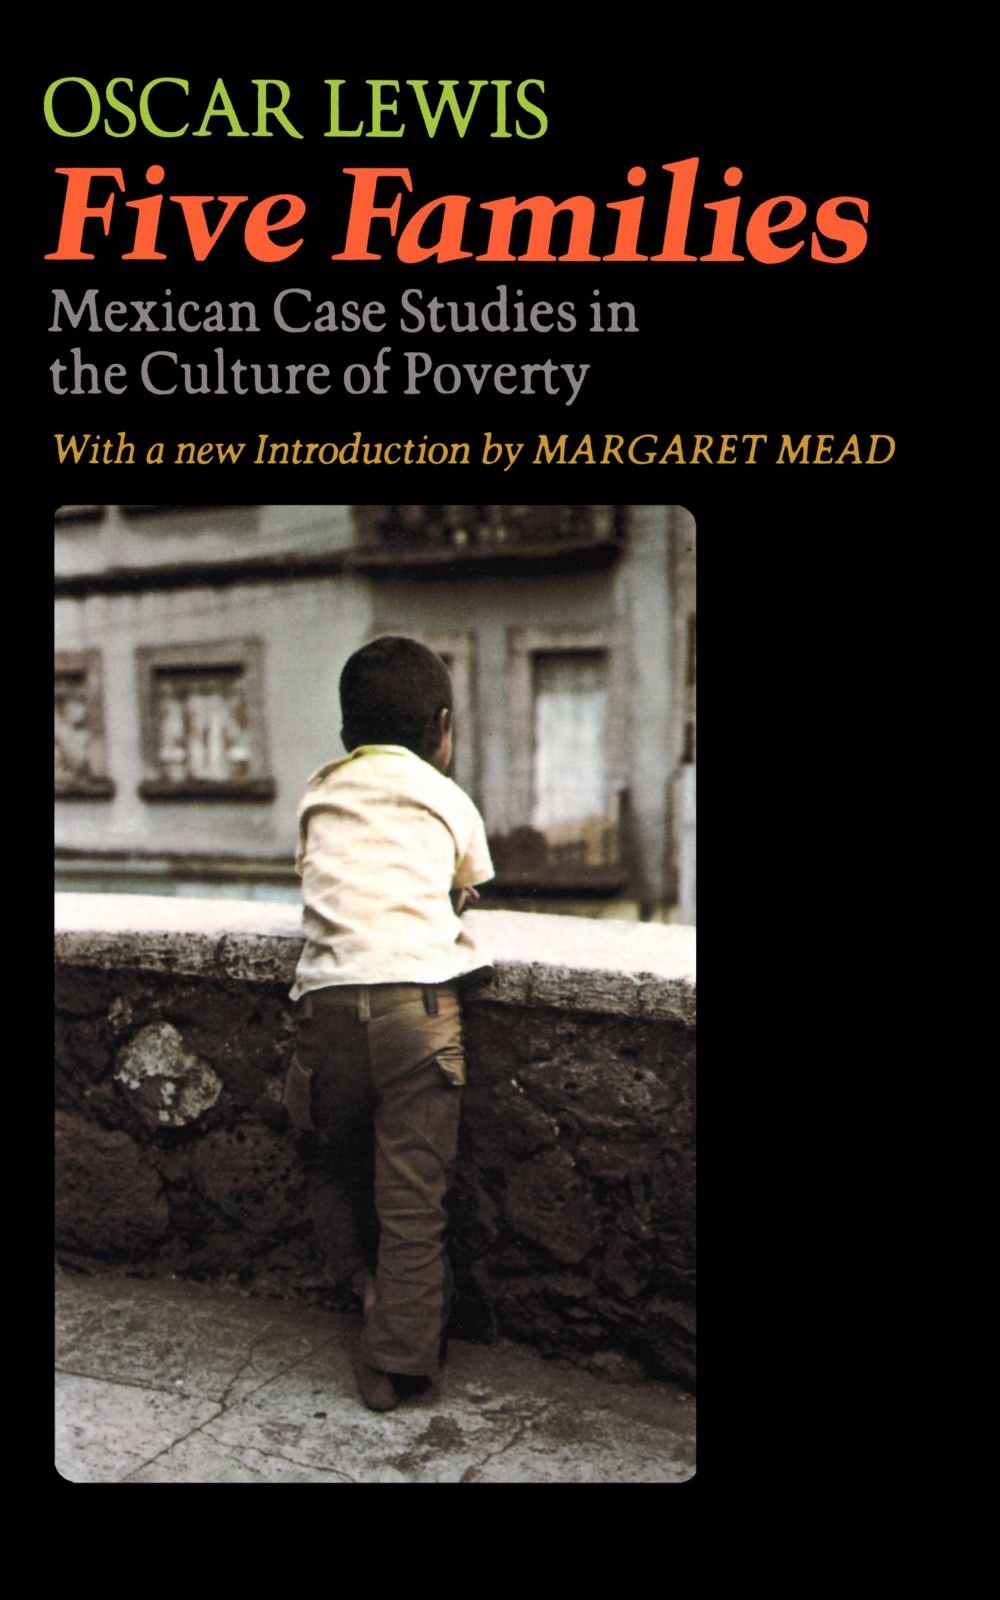 five families mexican case studies in the culture of poverty five families mexican case studies in the culture of poverty oscar lewis ruth m lewis 9780465097050 books ca